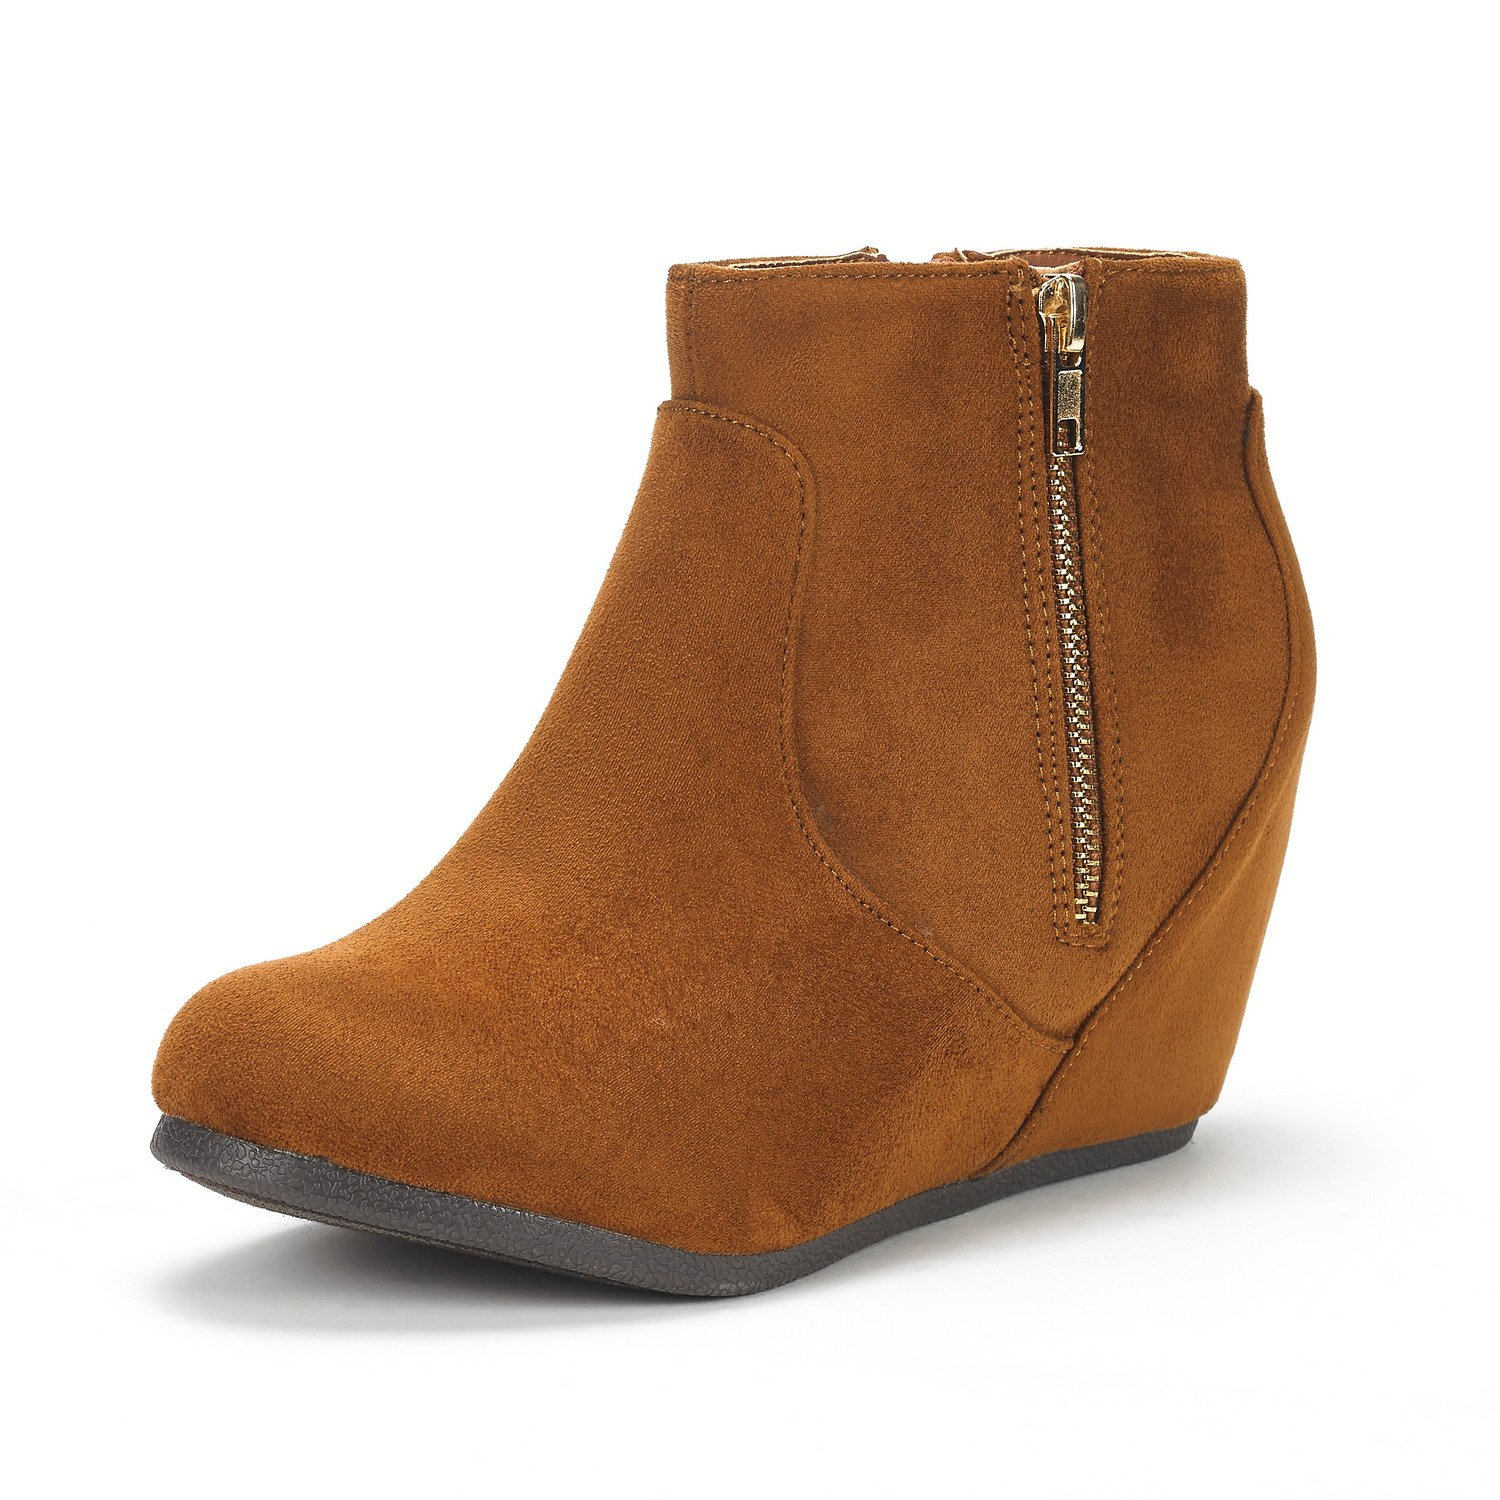 DREAM PAIRS Women's NARIE-New Tan Suede Low Wedges Ankle Boots Size 7 M US